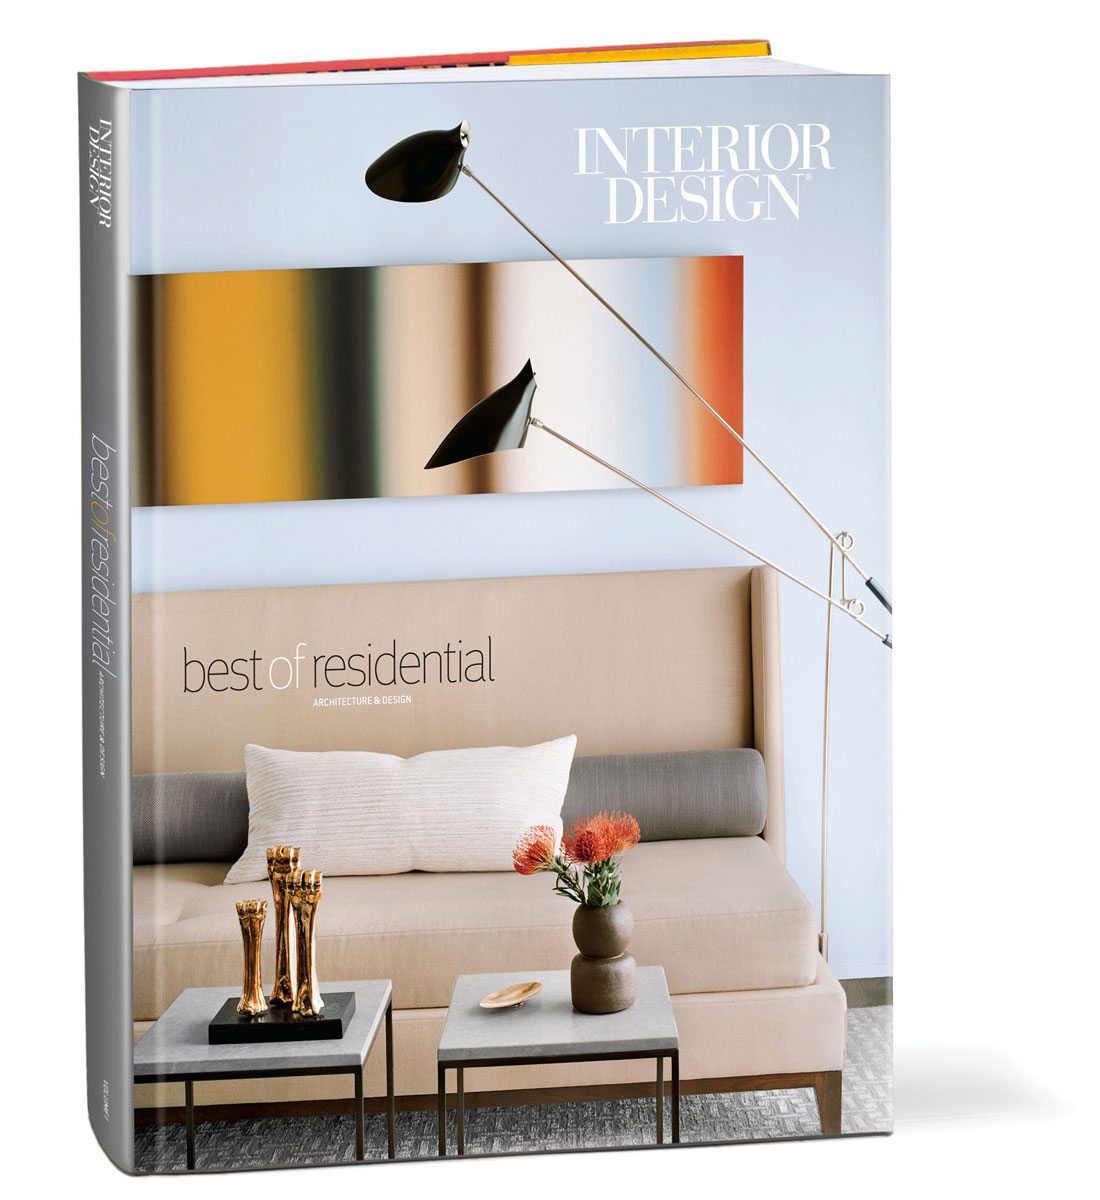 residential home designers. The Best of Residential Design  June 2013 9 x 12 300 pages Interior Books